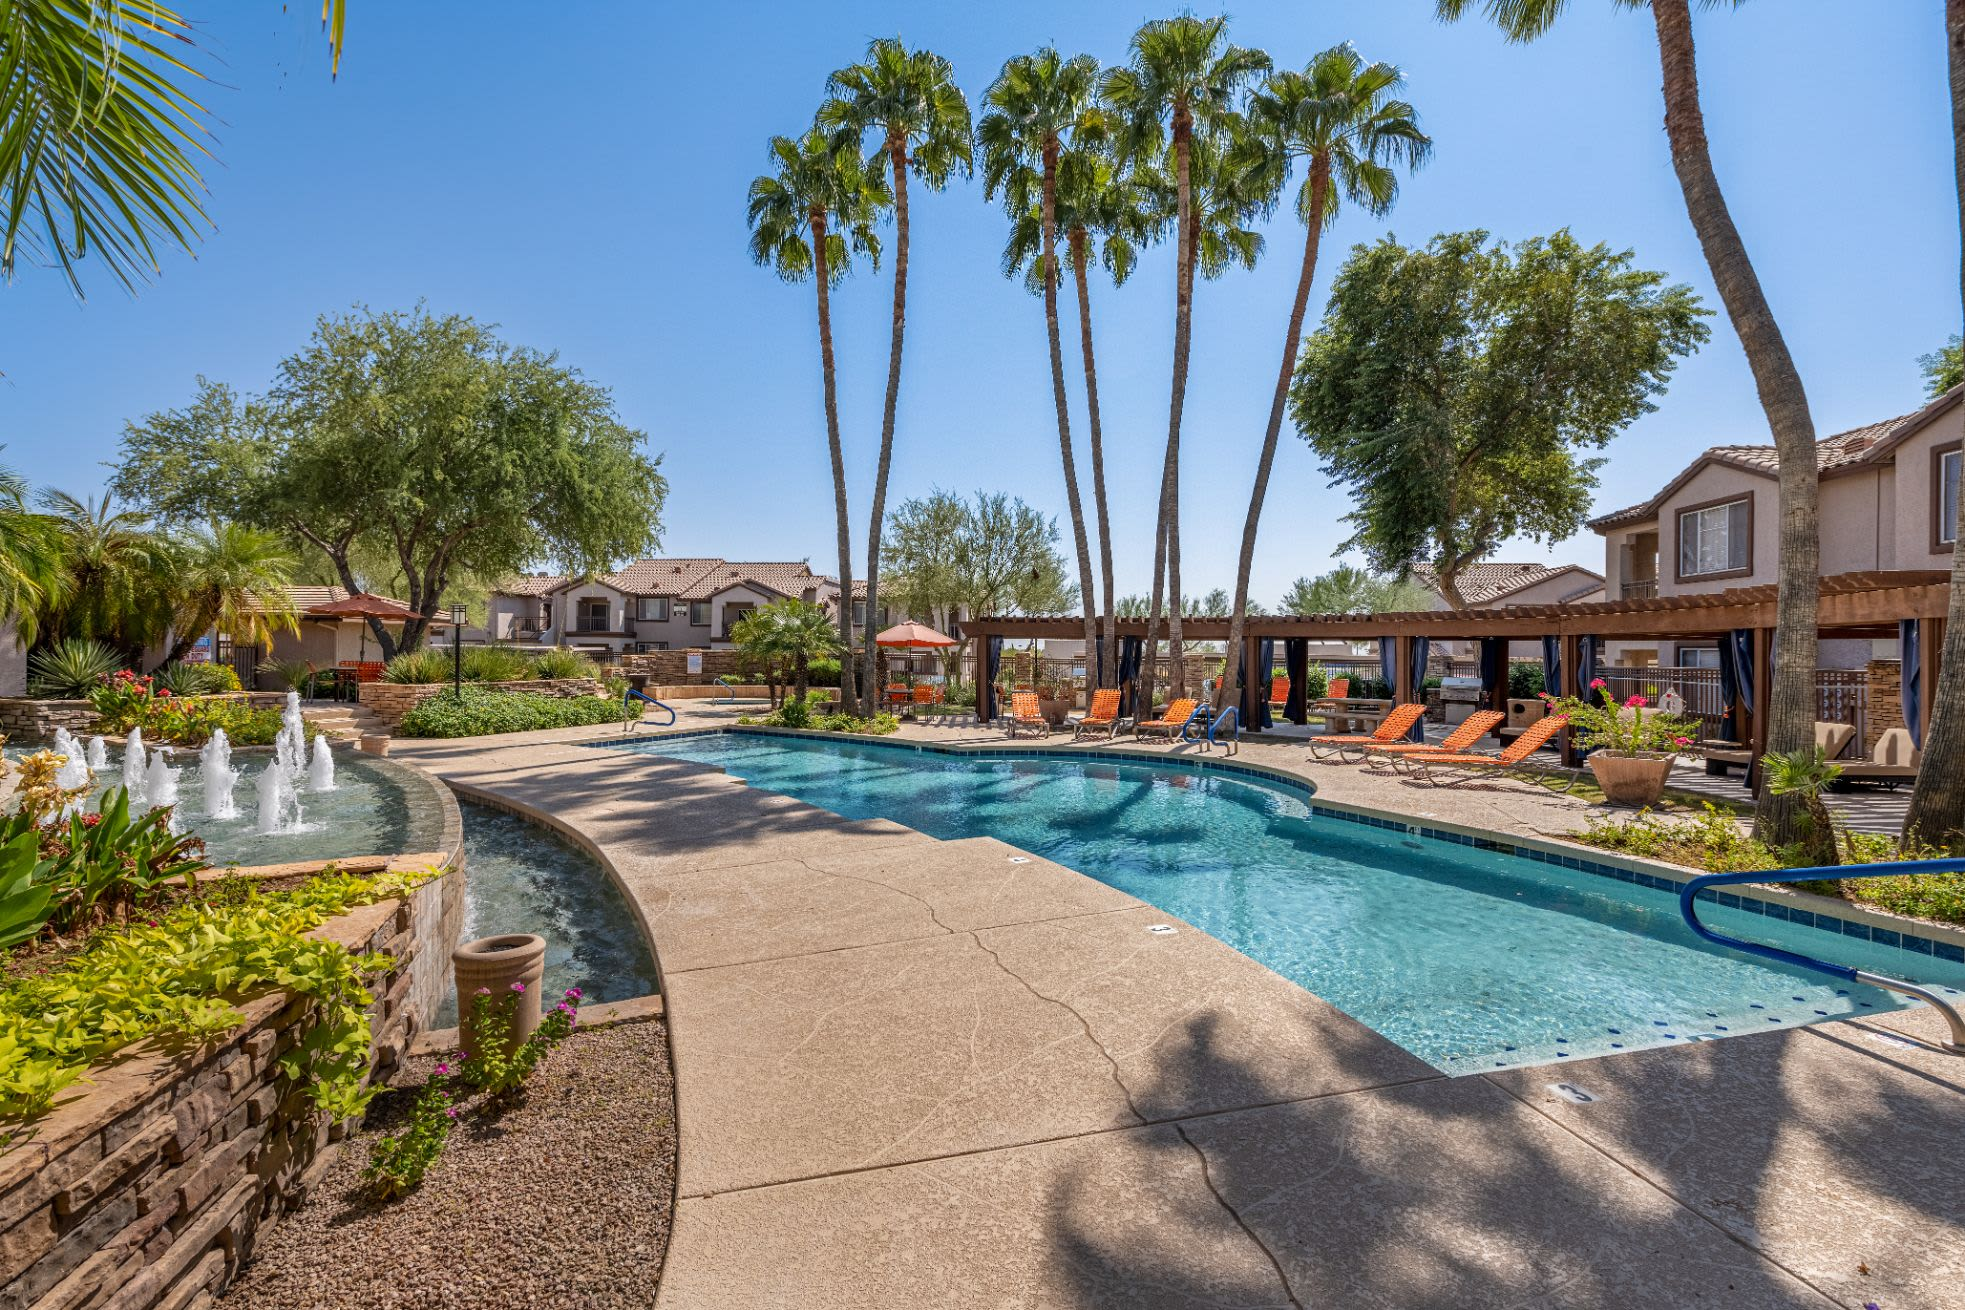 Swimming pool surrounded by vibrant landscaping Azure Creek in Cave Creek, Arizona